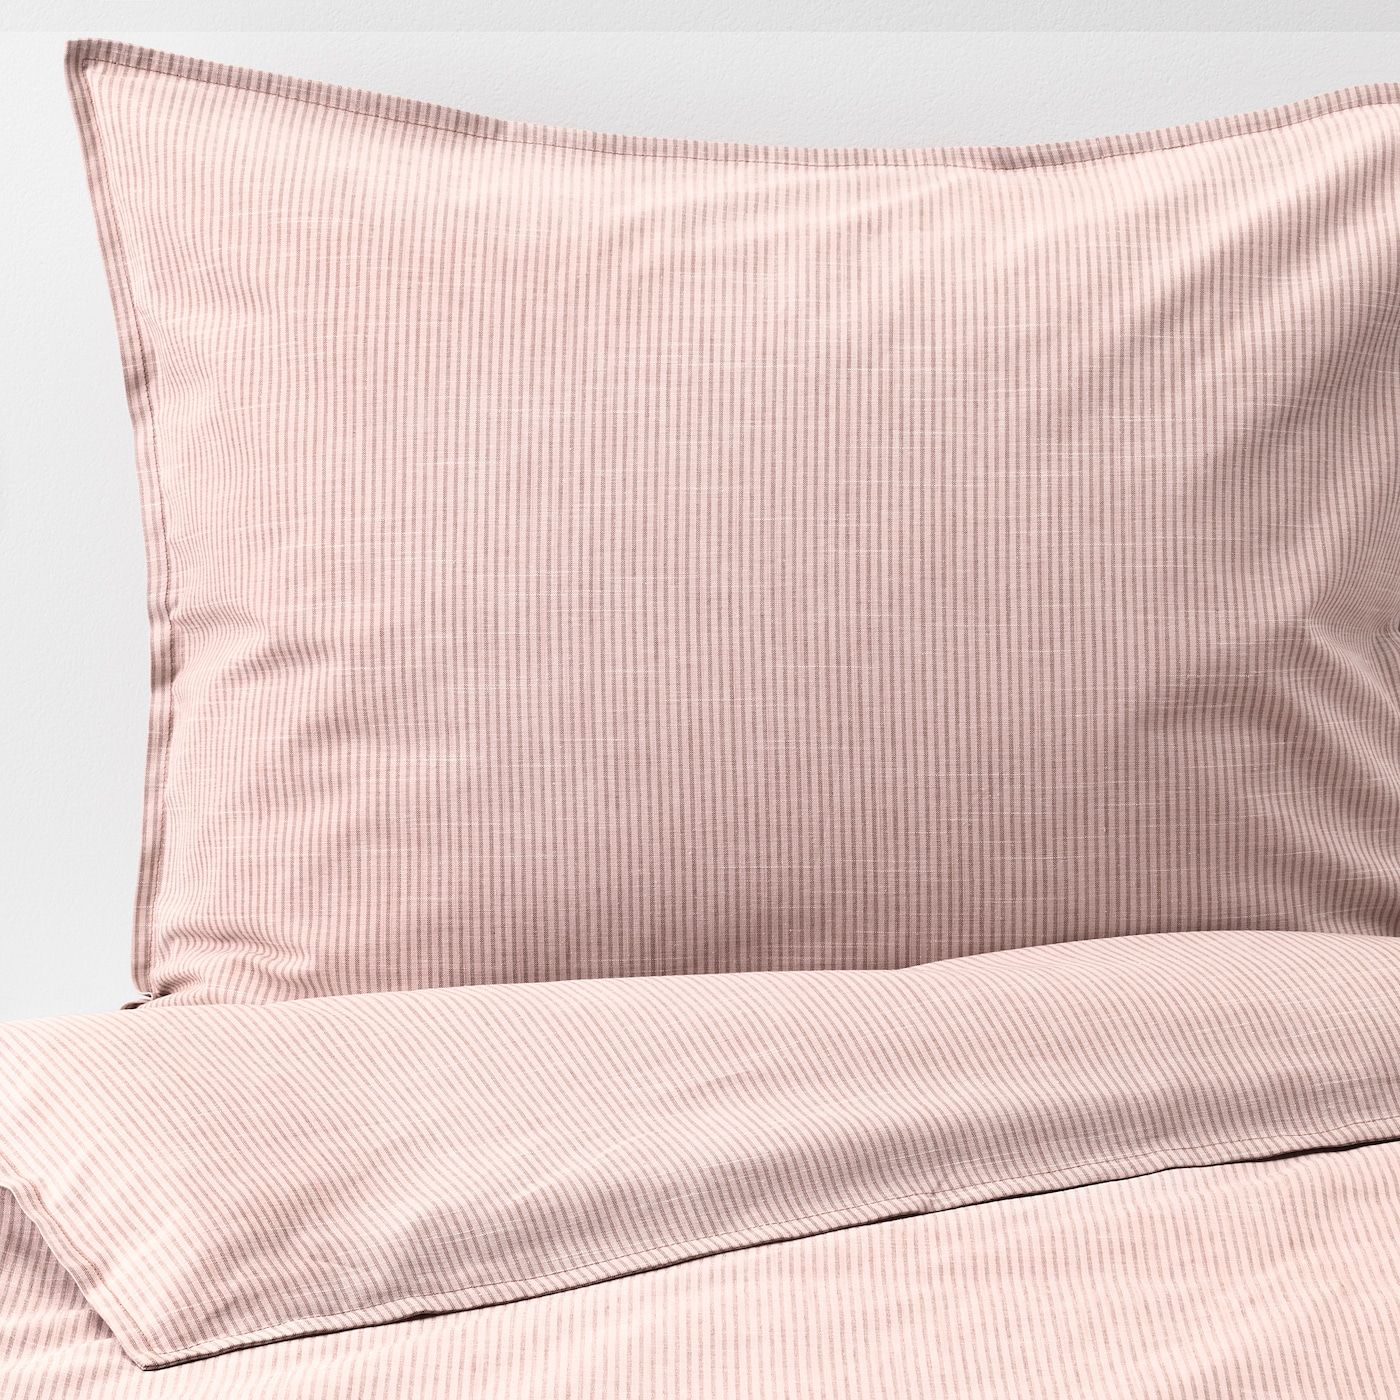 Bergpalm Duvet Cover And Pillowcase S Pink Stripe Full Queen